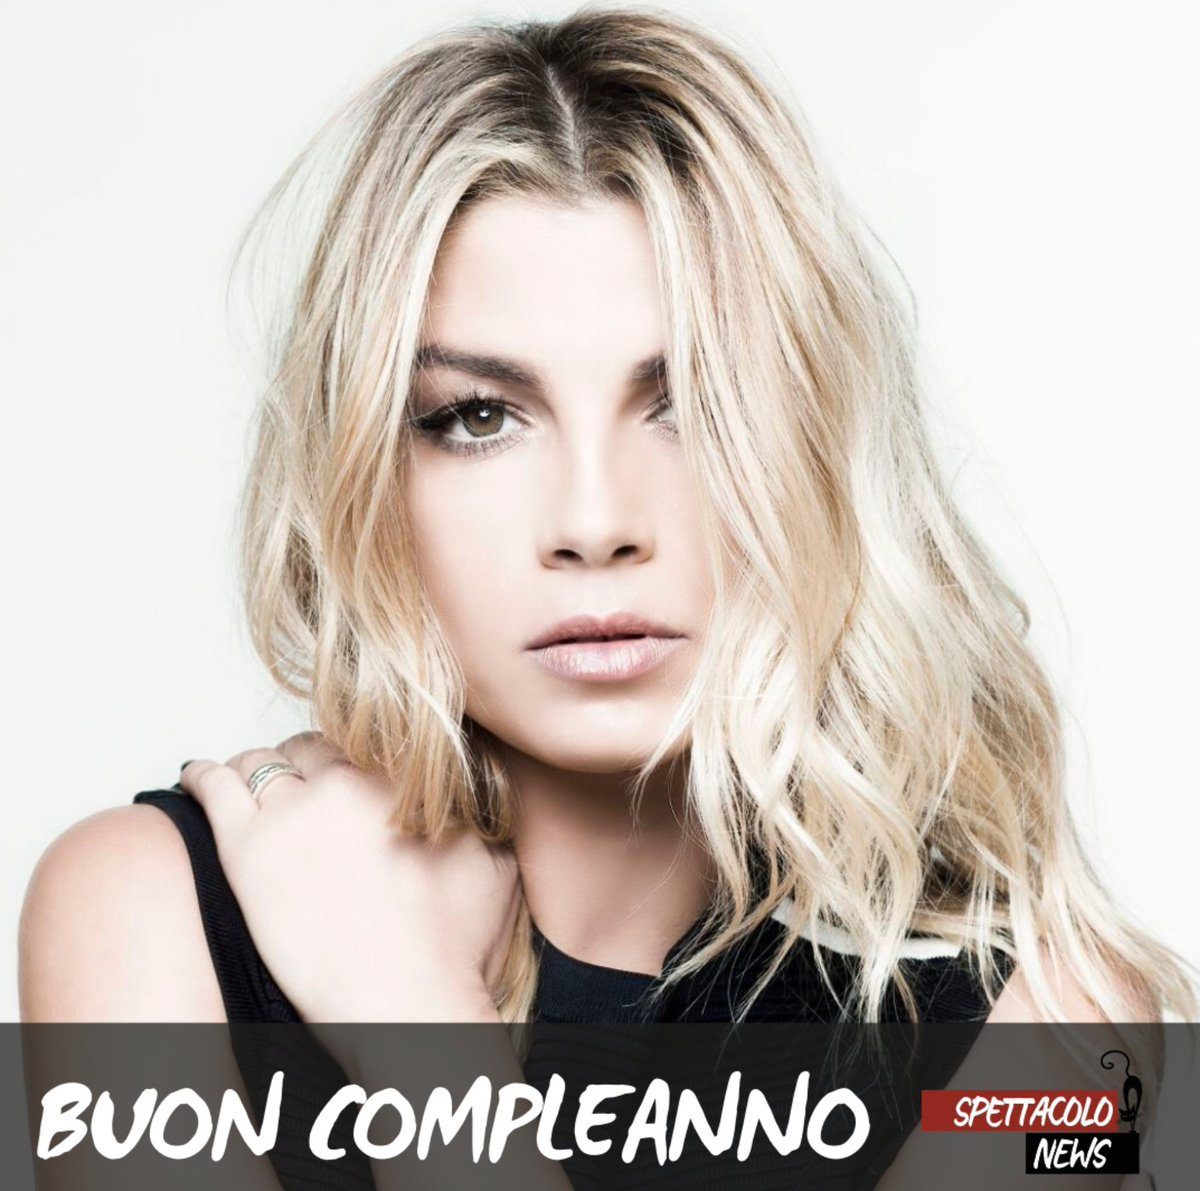 #BuonCompleannoEmma